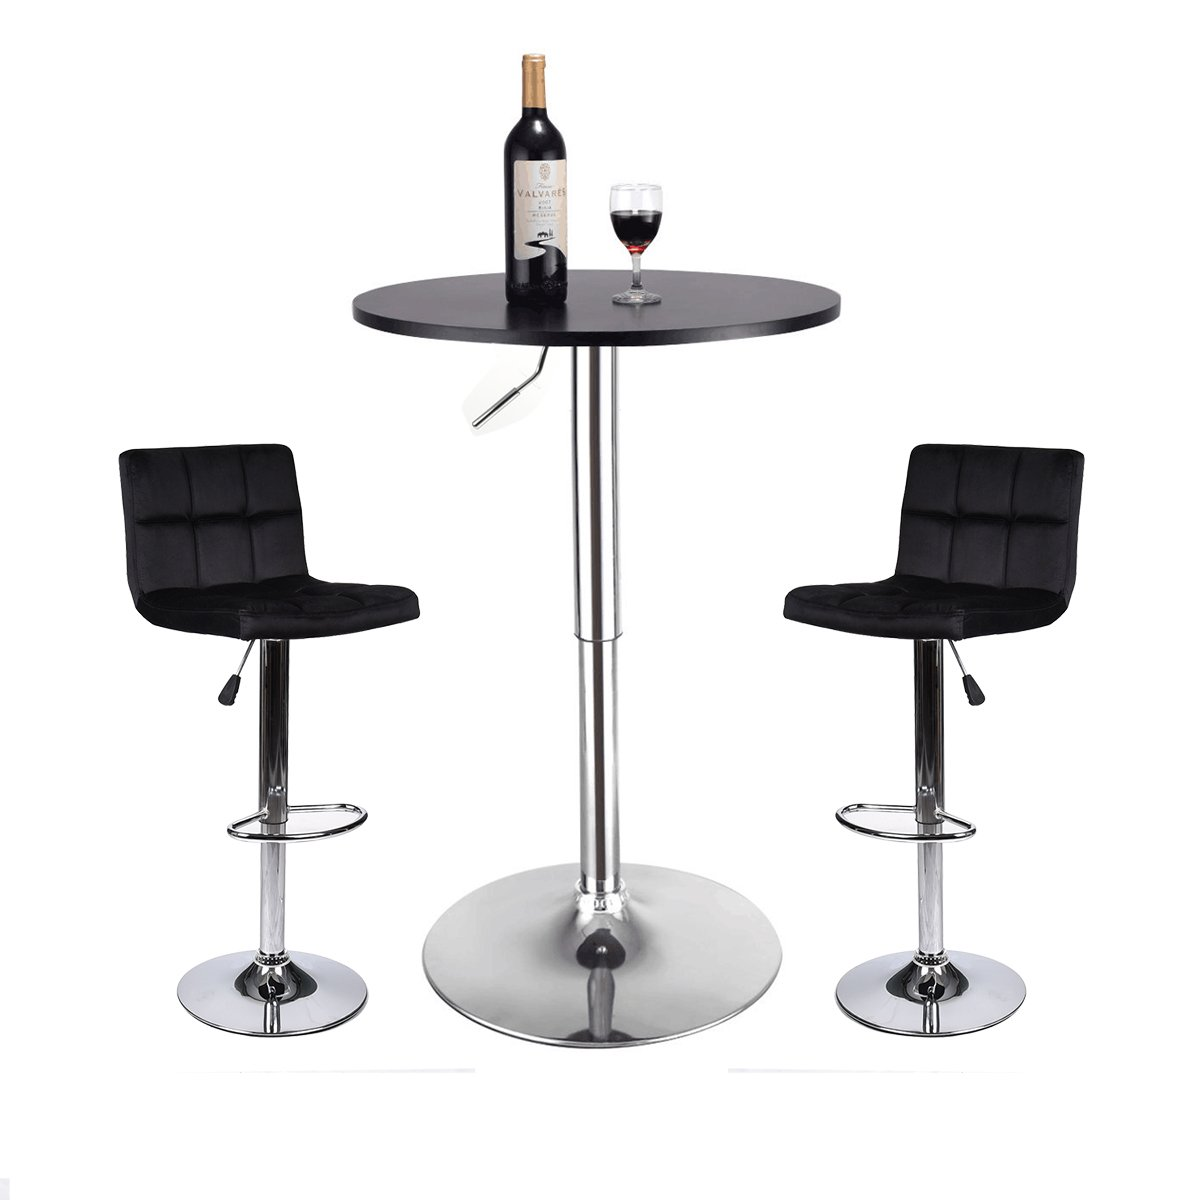 3 Piece Bar Table Stools Set - Height Adjustable Table with Swivel Bar Chairs Set - Bistro Pub Kitchen Dining Furniture Black (Set 7)